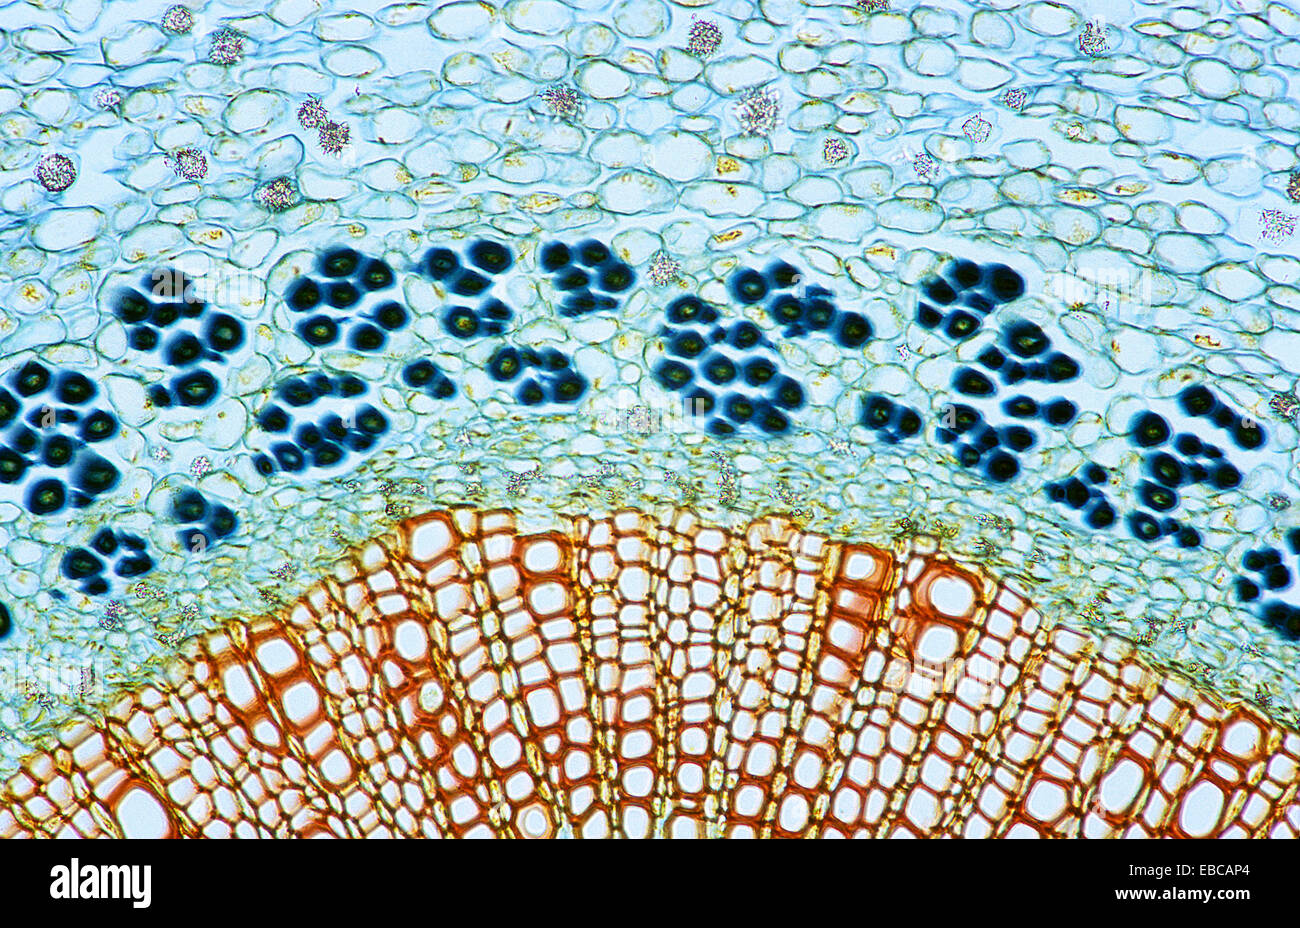 Plant Anatomy Cell Stock Photos Plant Anatomy Cell Stock Images